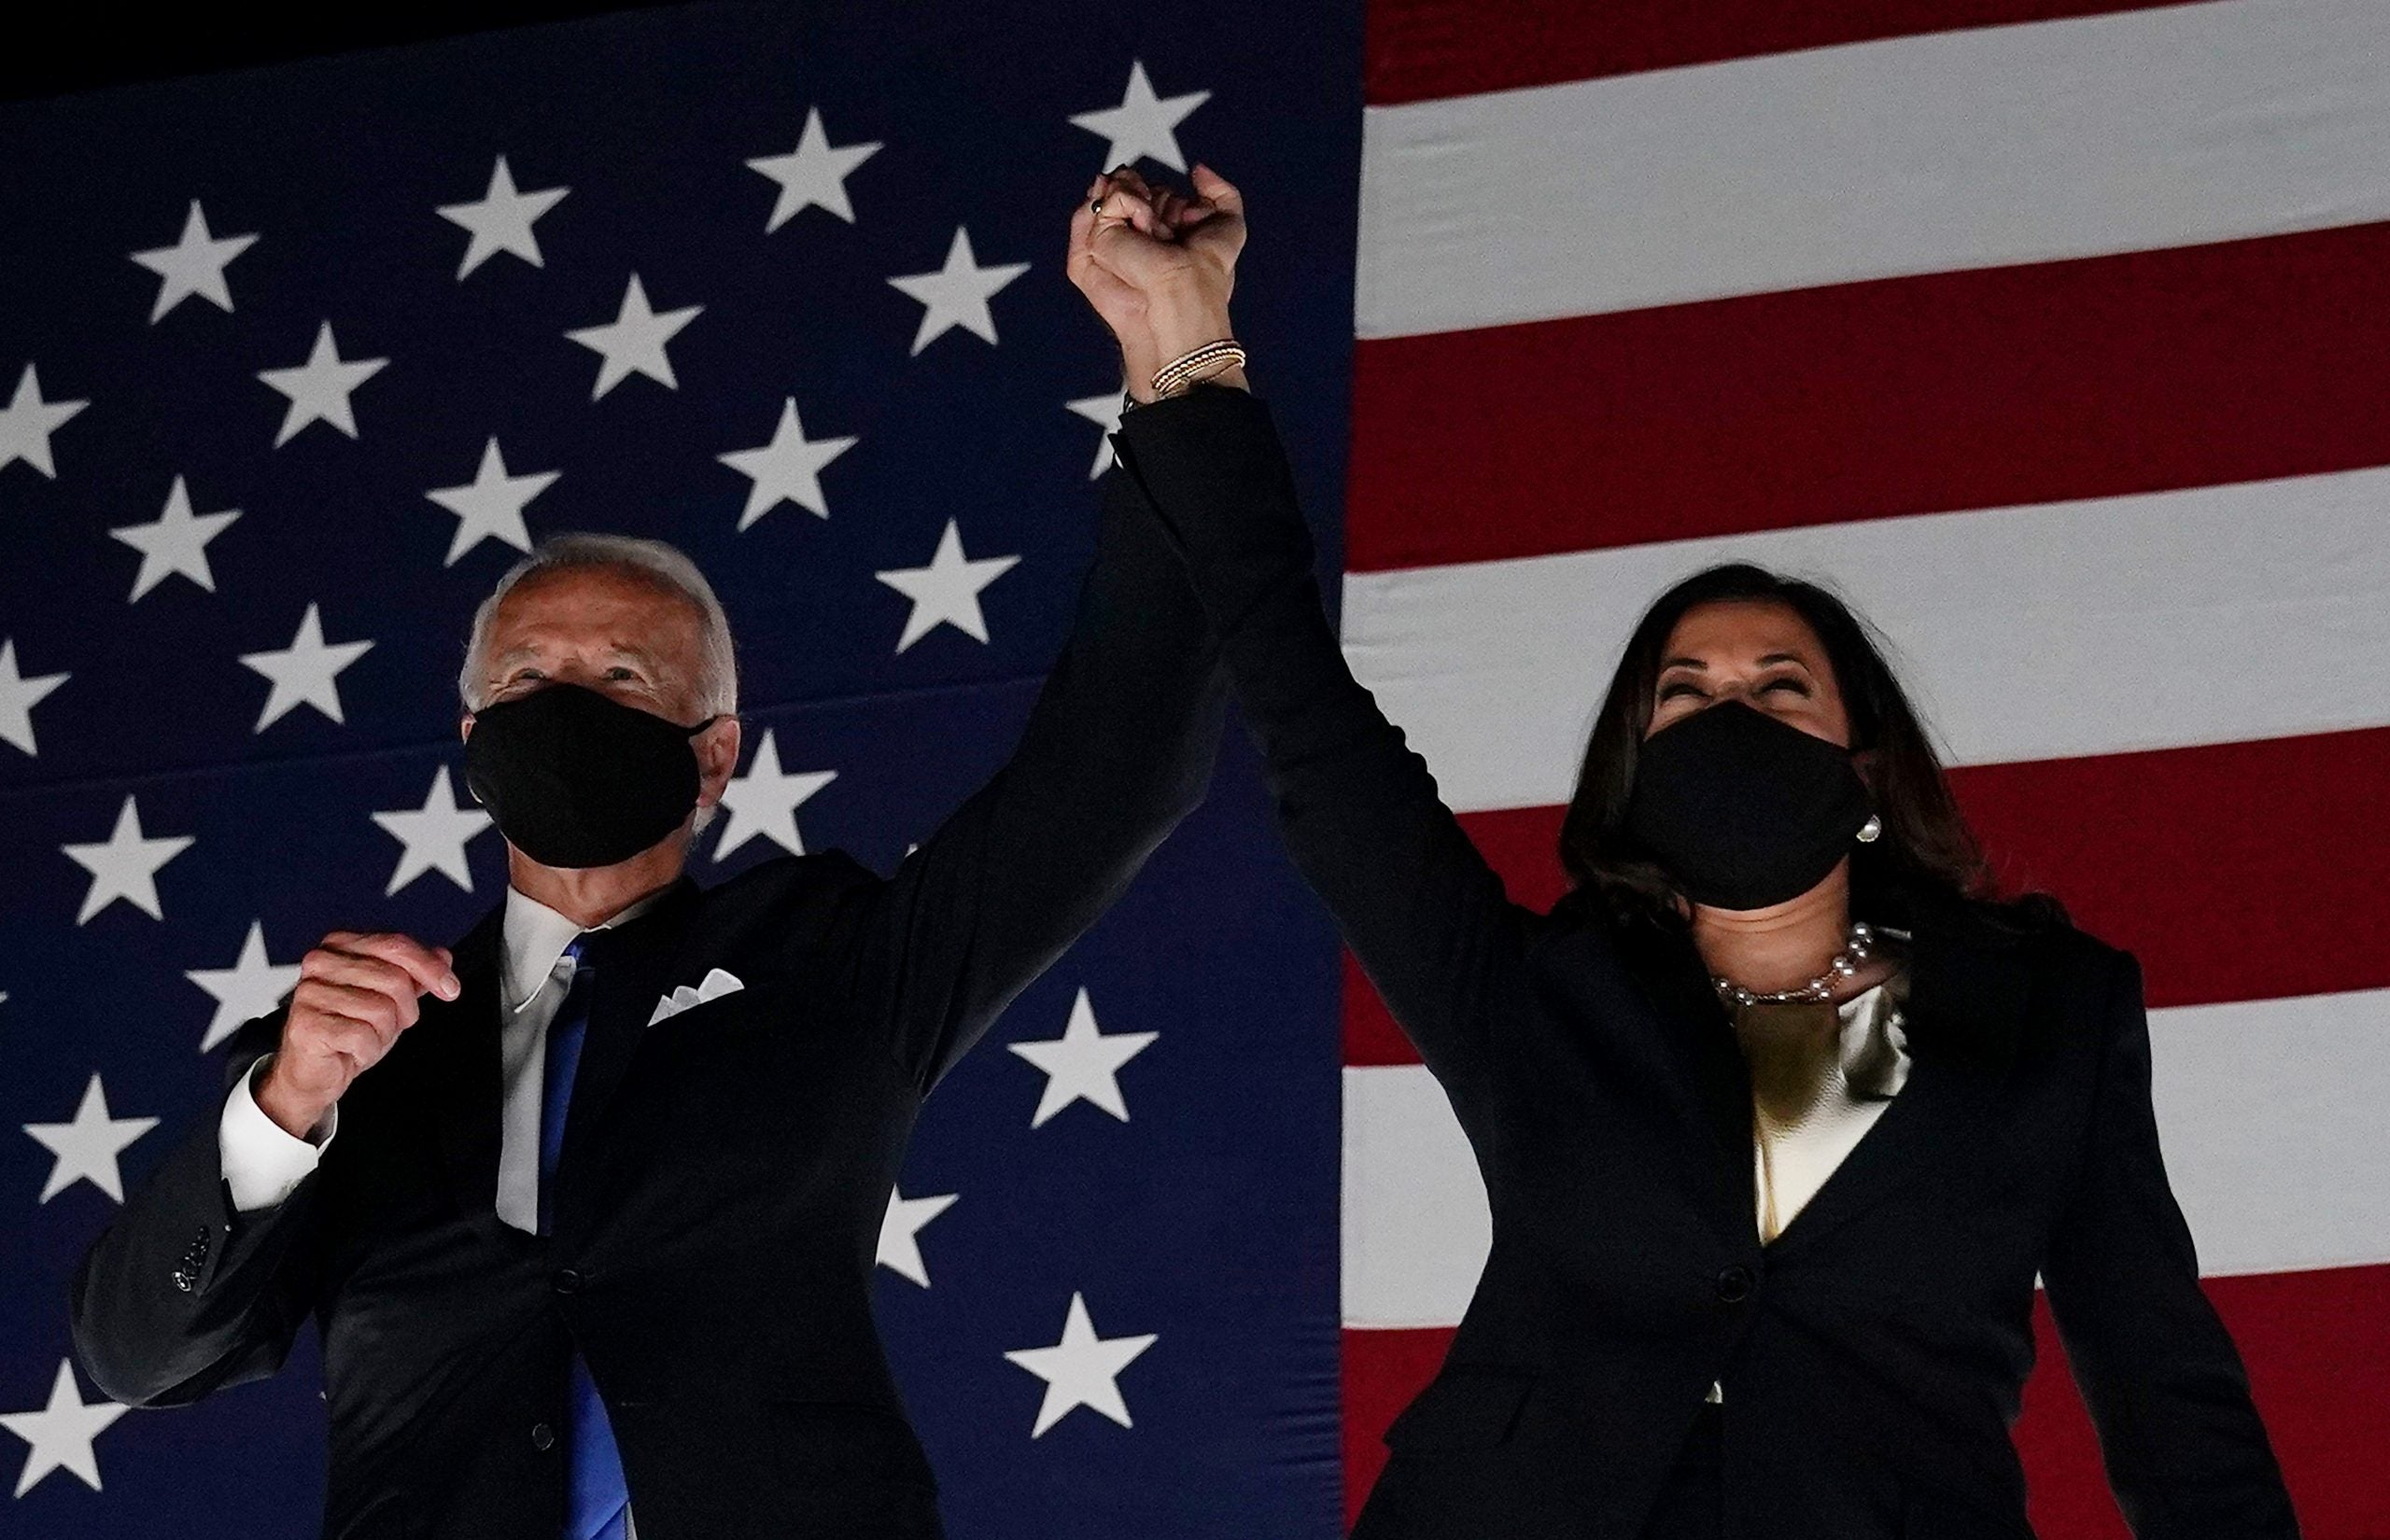 Kamala Harris and Joe Biden clasp hands in front of an American flag to formalize Biden-Harris ticket